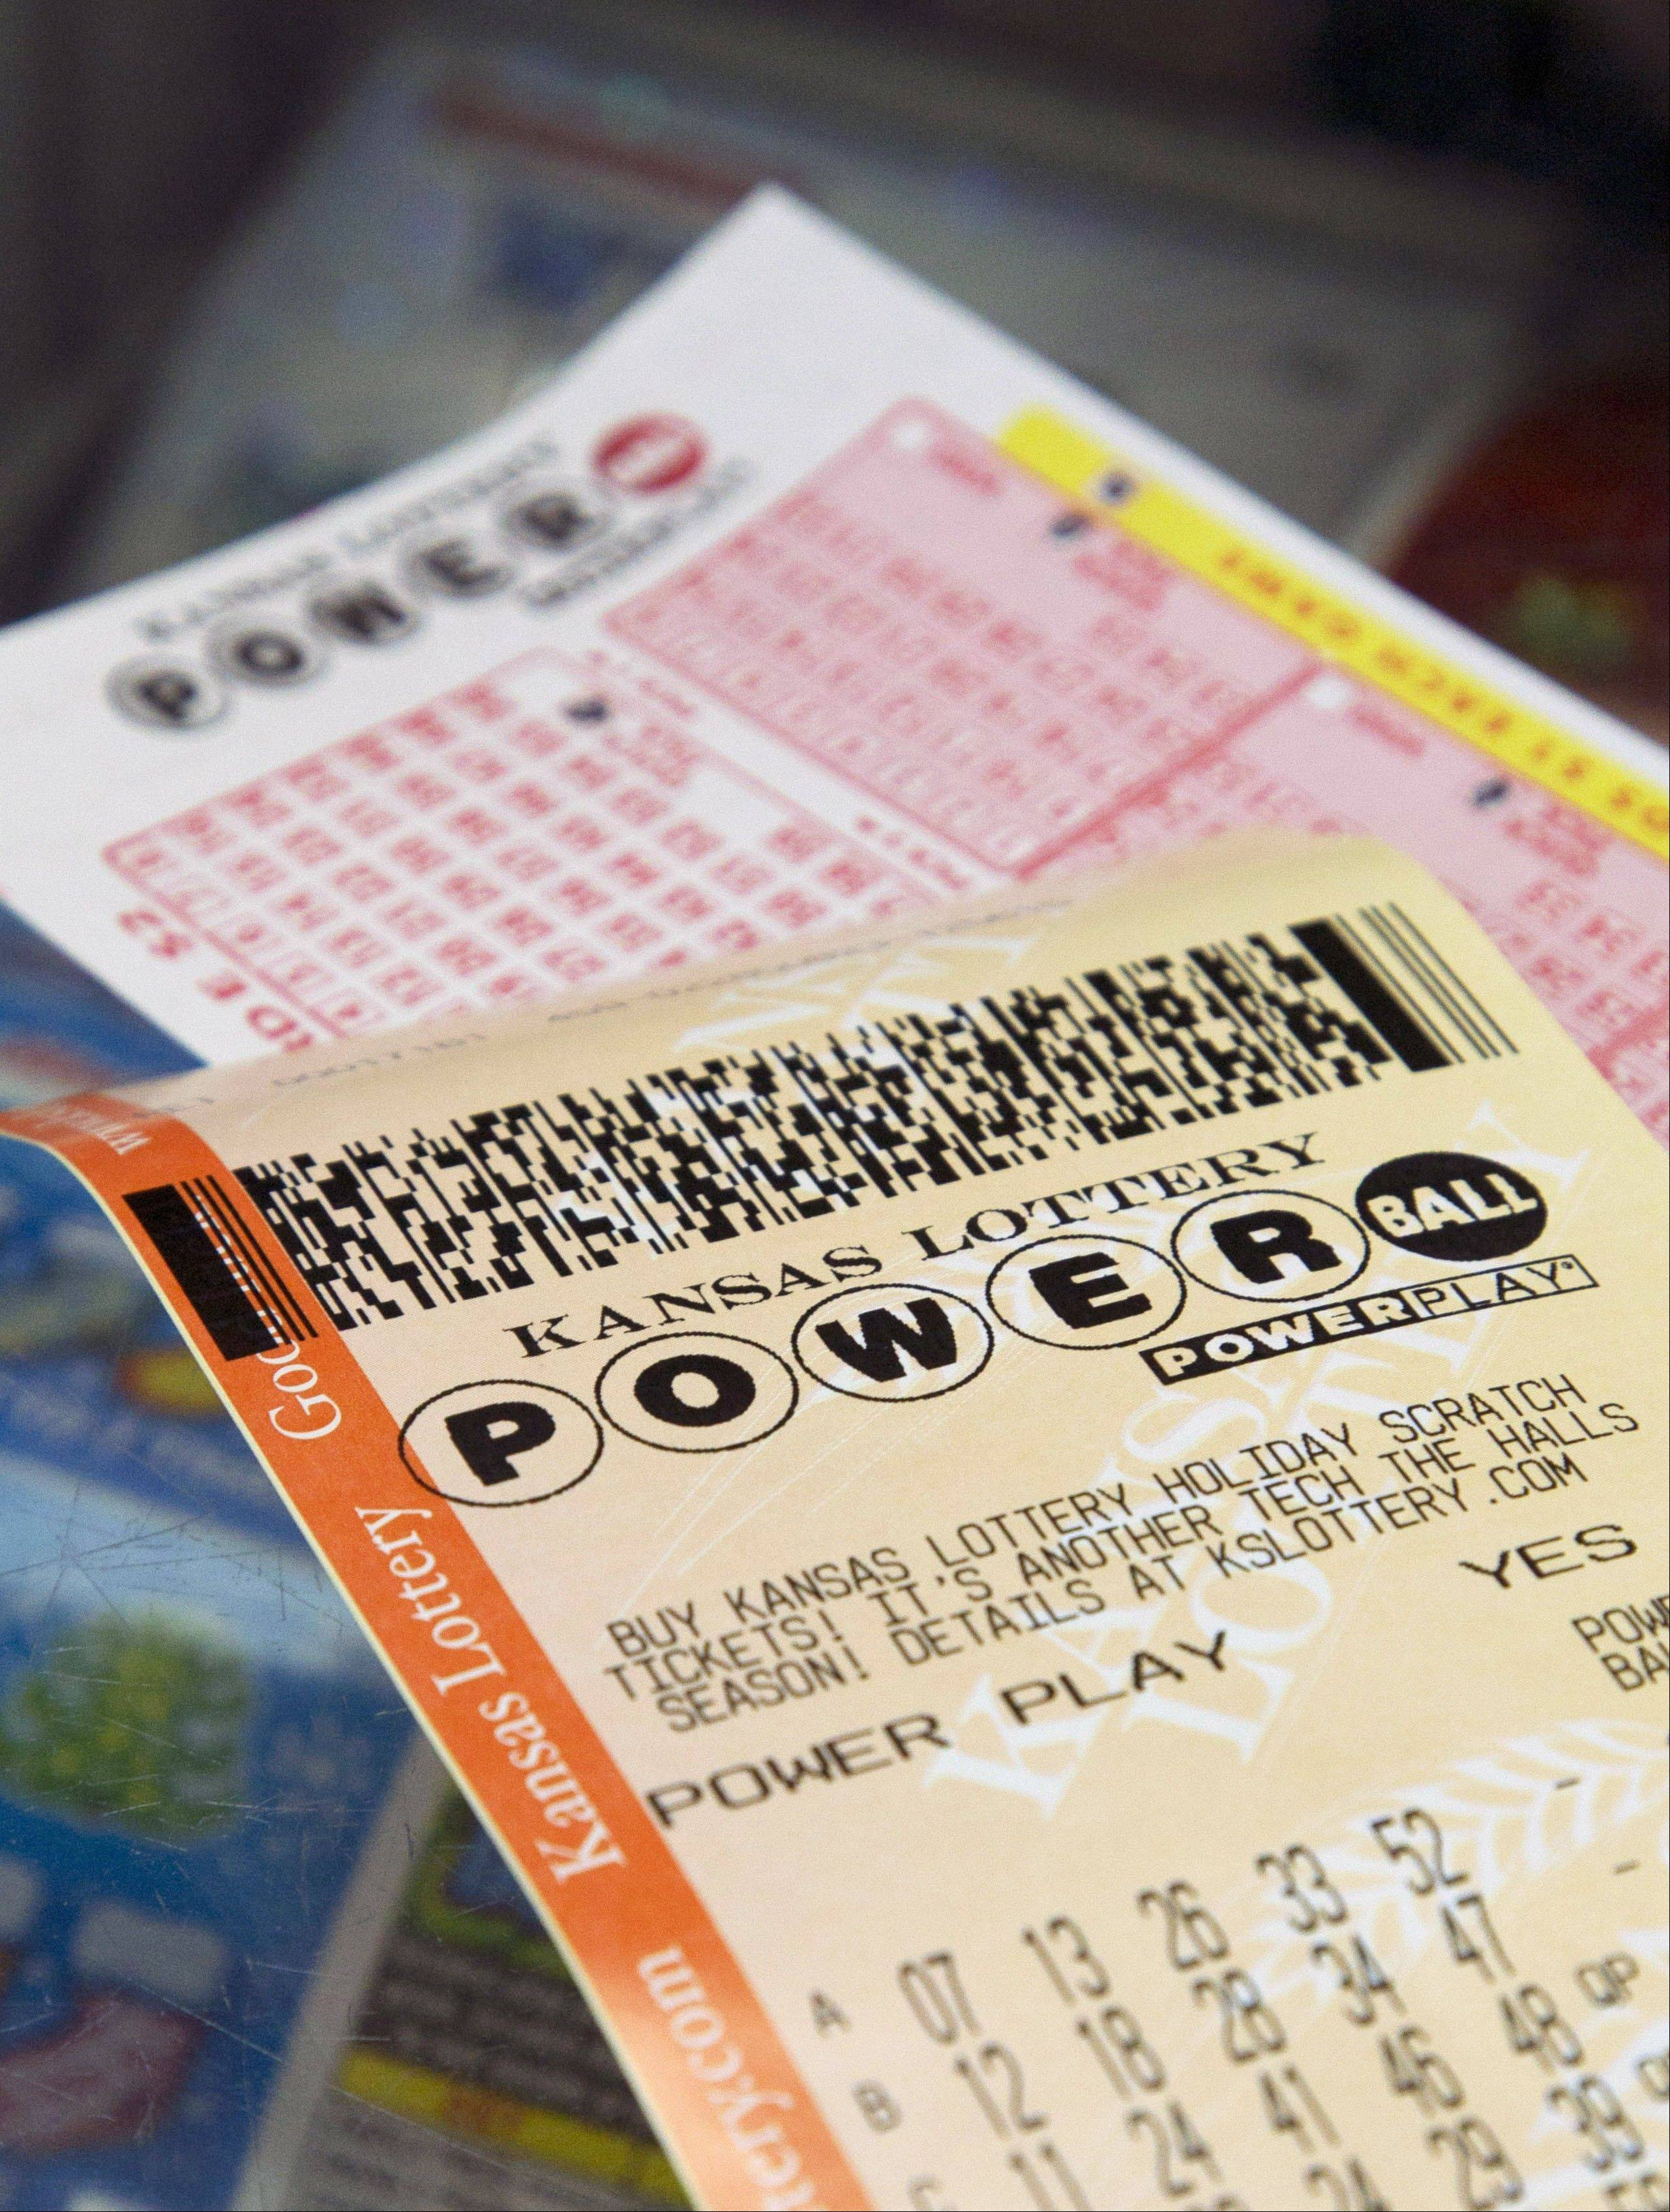 The jackpot for Powerball's Wednesday drawing has climbed to $425 million. No one picked all of the winning numbers on Saturday.